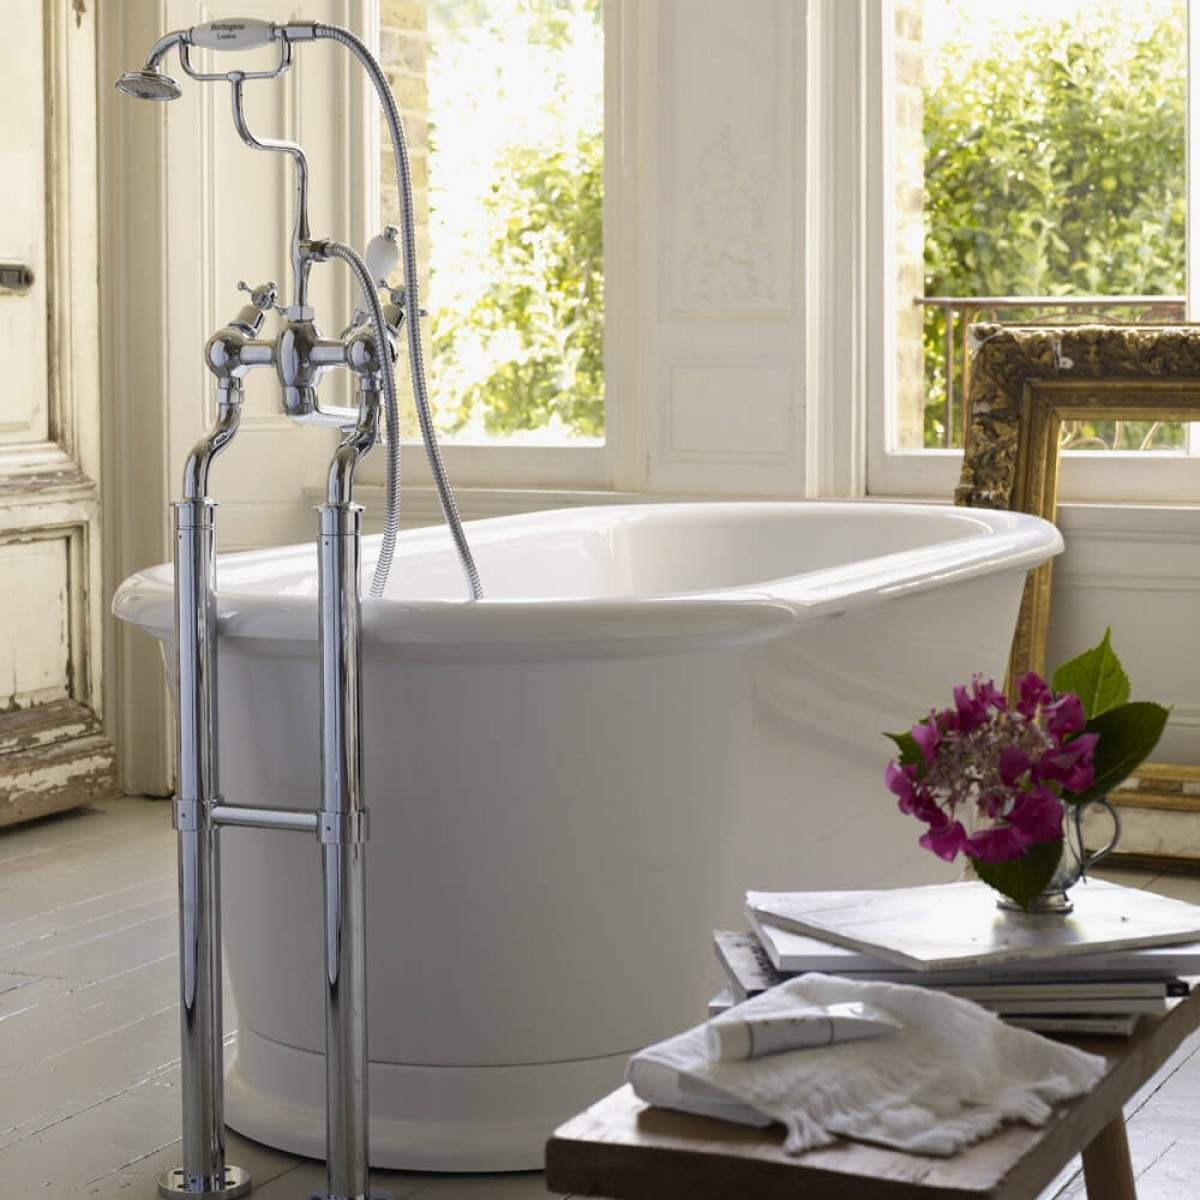 BURLINGTON LONDON ROUND FREESTANDING BATH - 1800 X 850MM